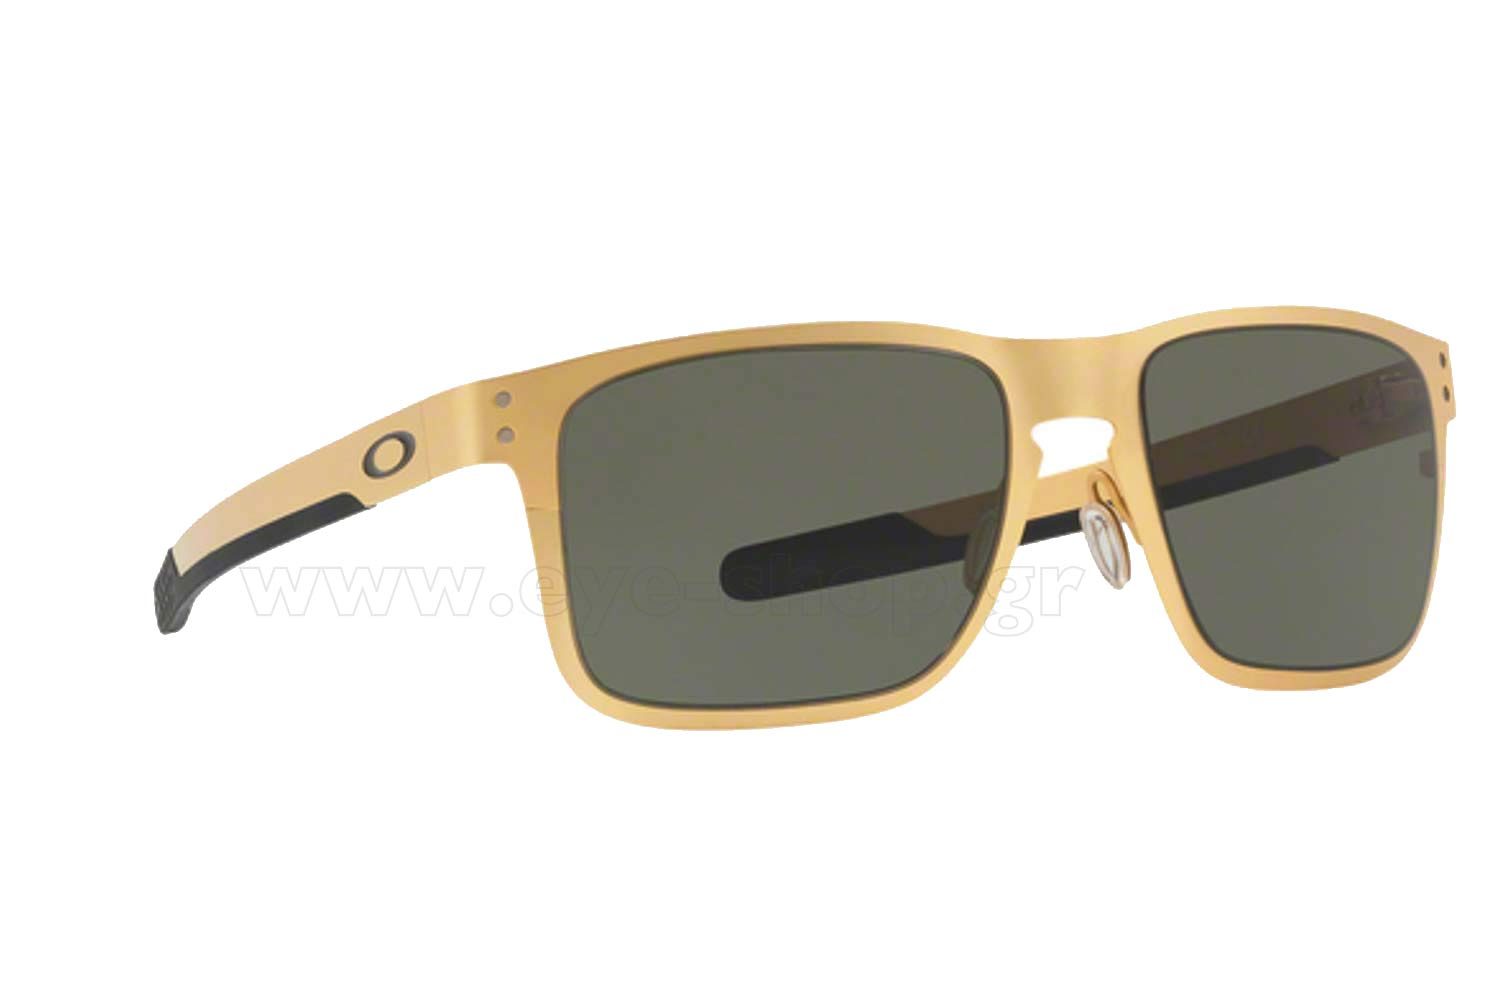 Γυαλιά Oakley Holbrook Metal 4123 08 Satin Gold Dark grey